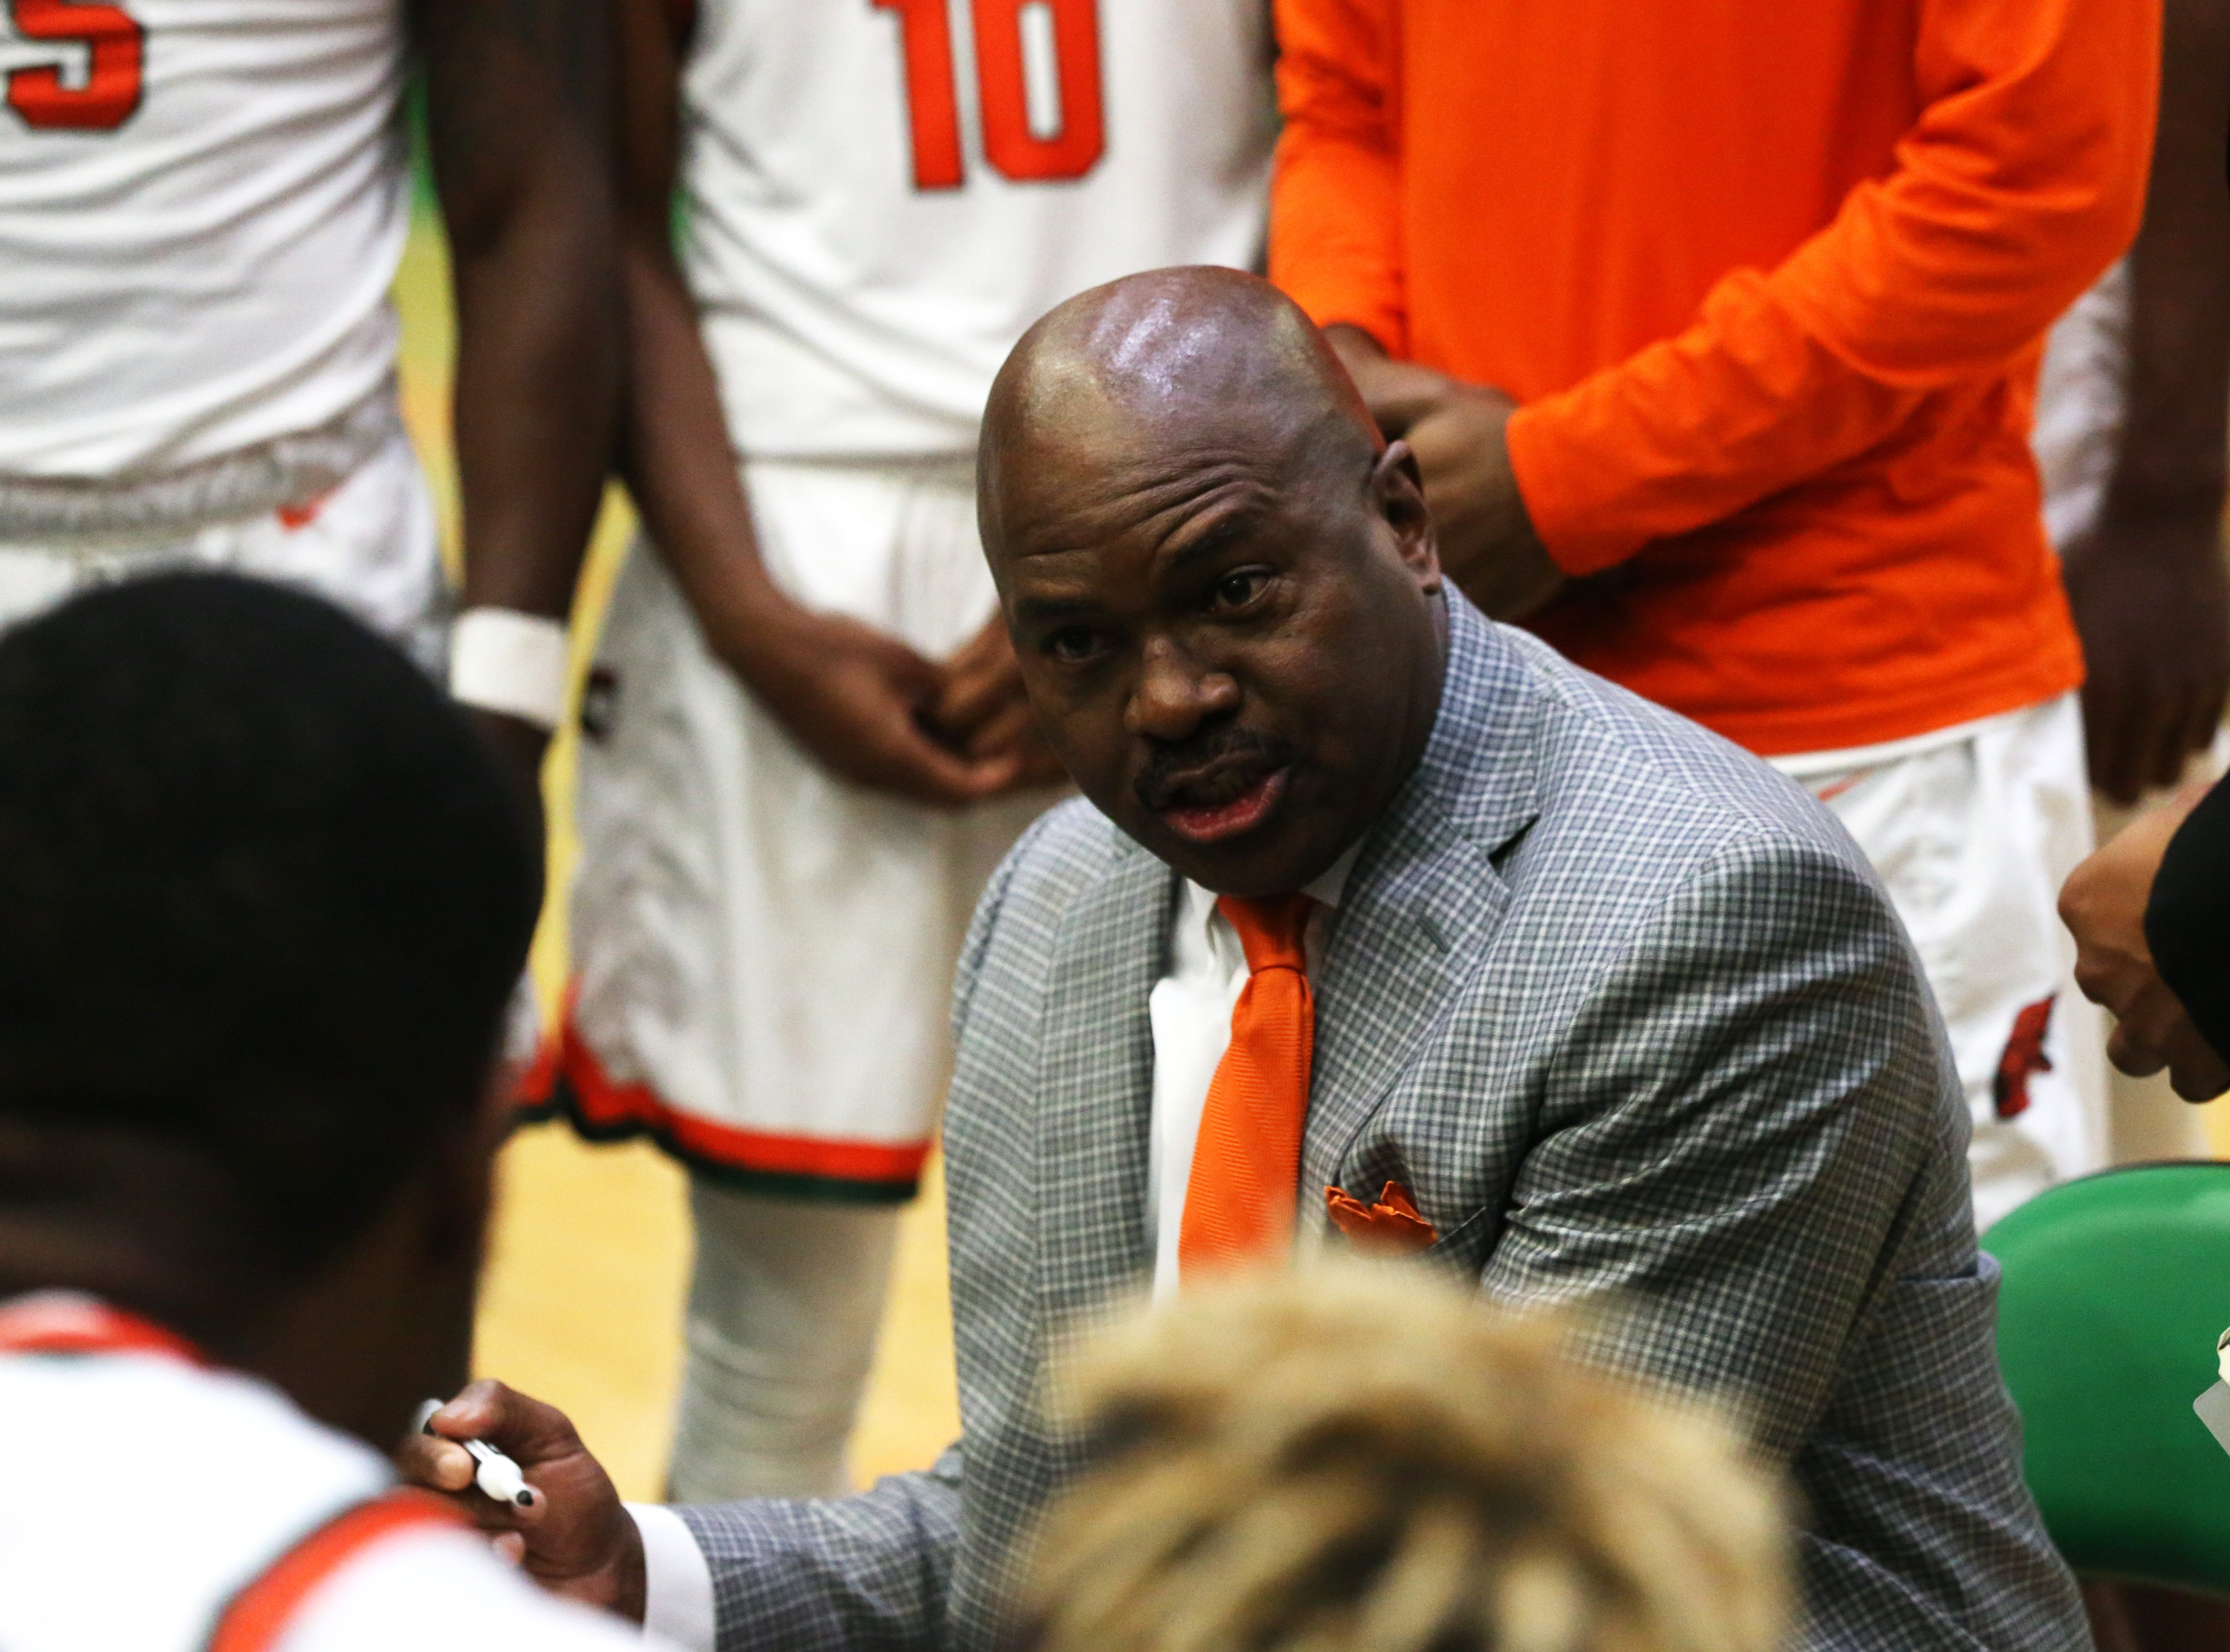 Head Coach, Robert McCullum tells the team how to fix their mistakes as the FAMU Rattlers take on the Tuskegee Golden Tigers in their first home game of the season in the Lawson Center, Saturday, Nov. 10, 2018.